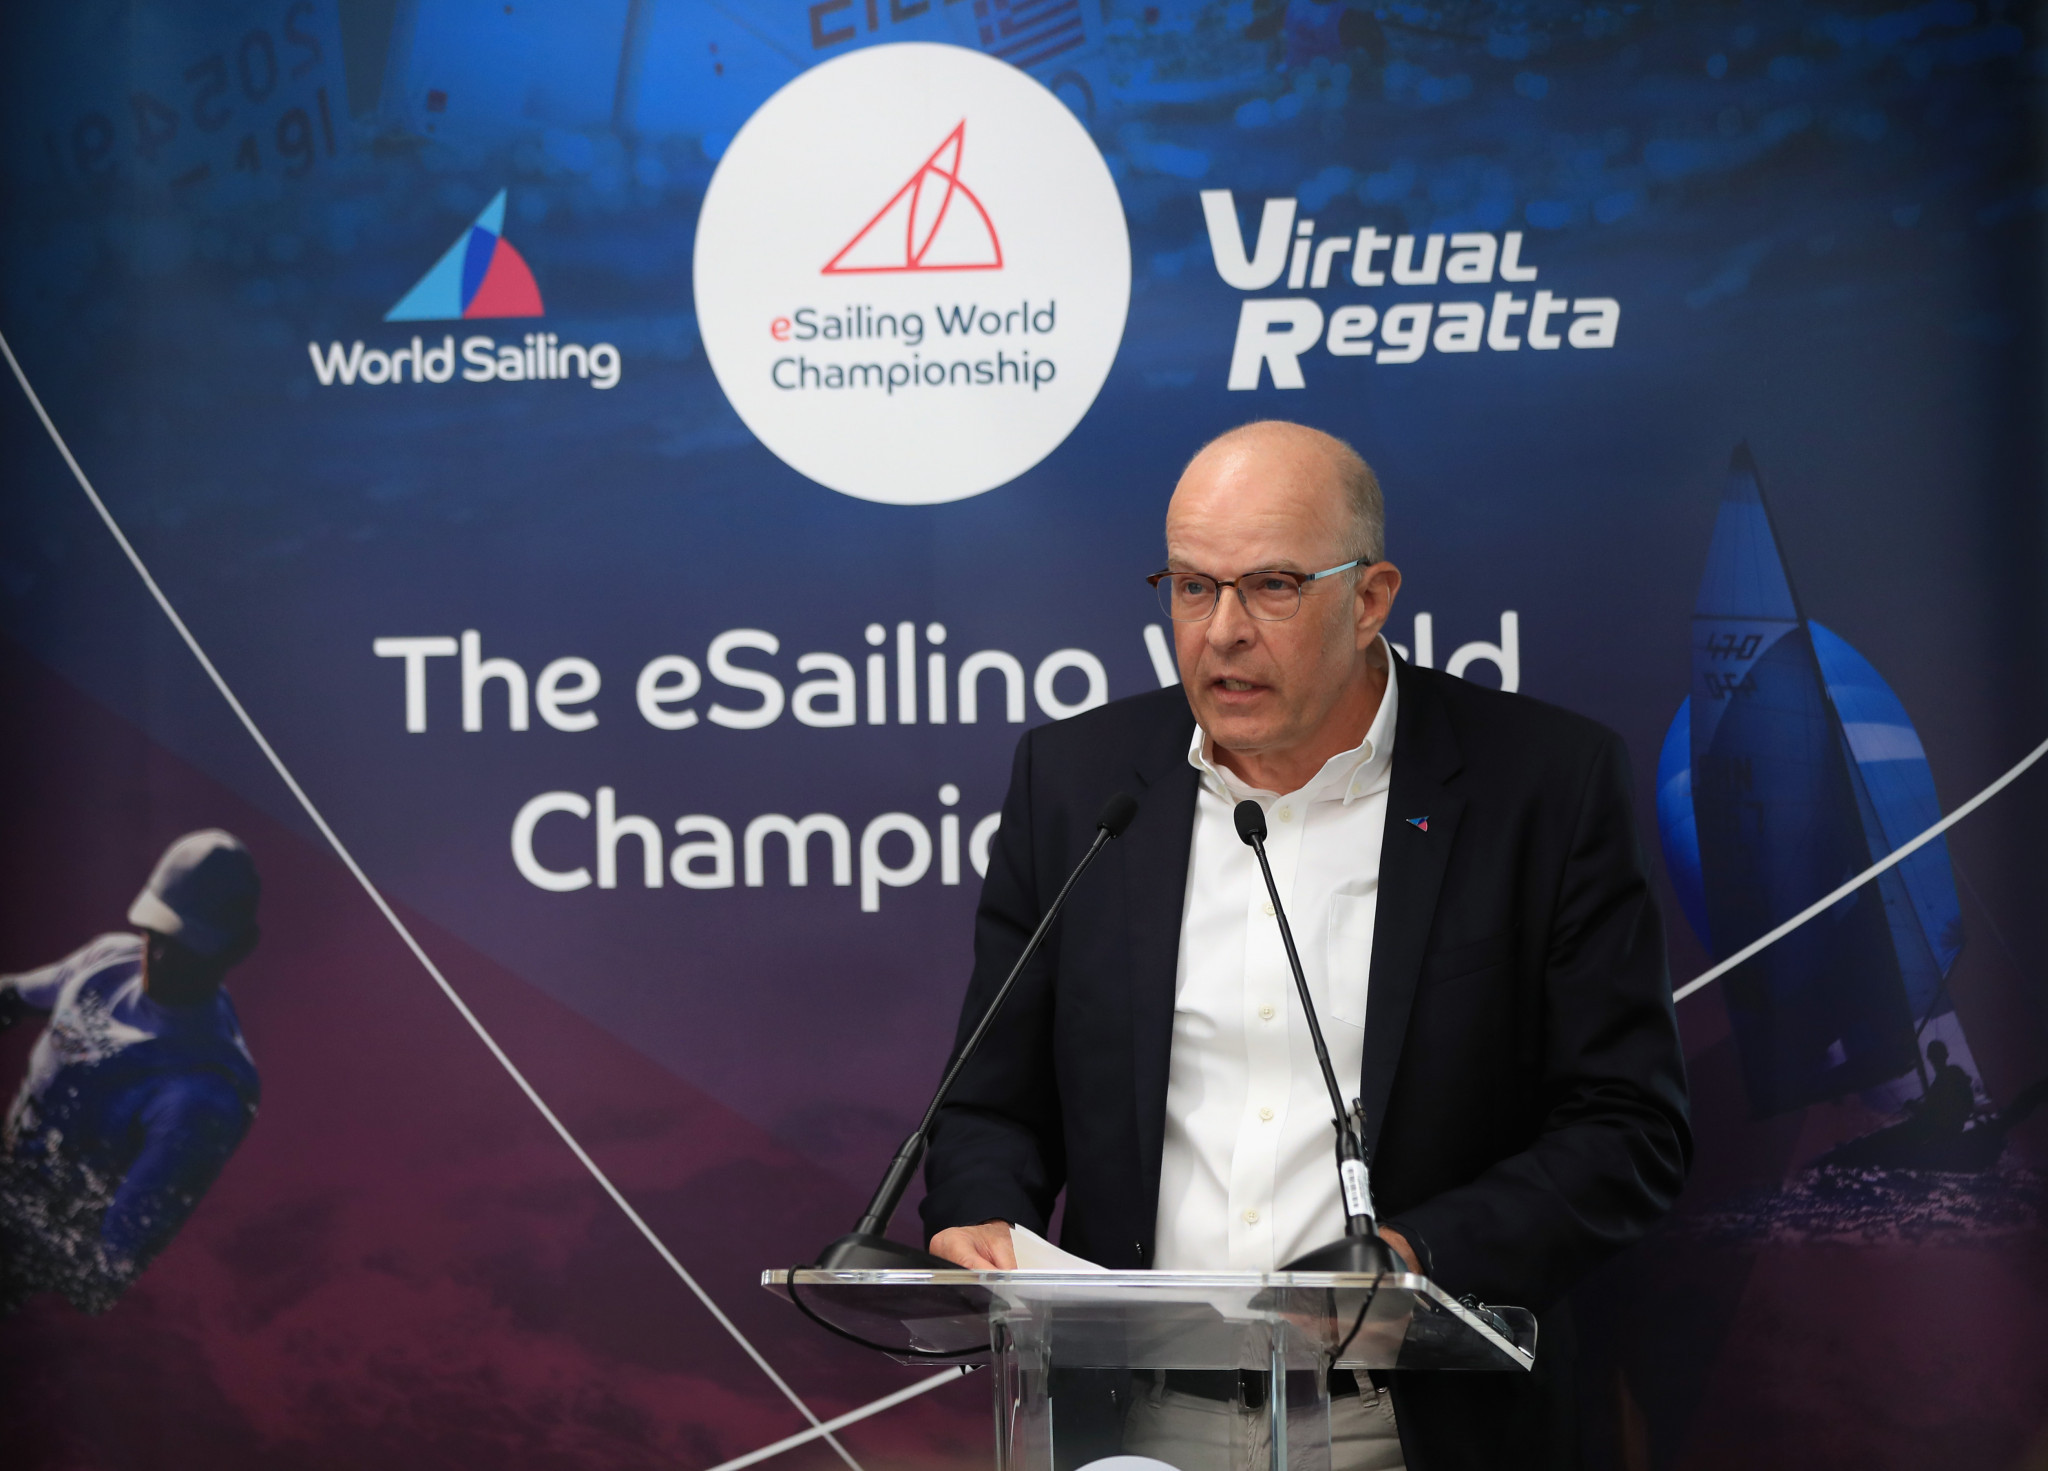 World Sailing President Kim Andersen says the governing body is entering a brave new world ©Getty Images